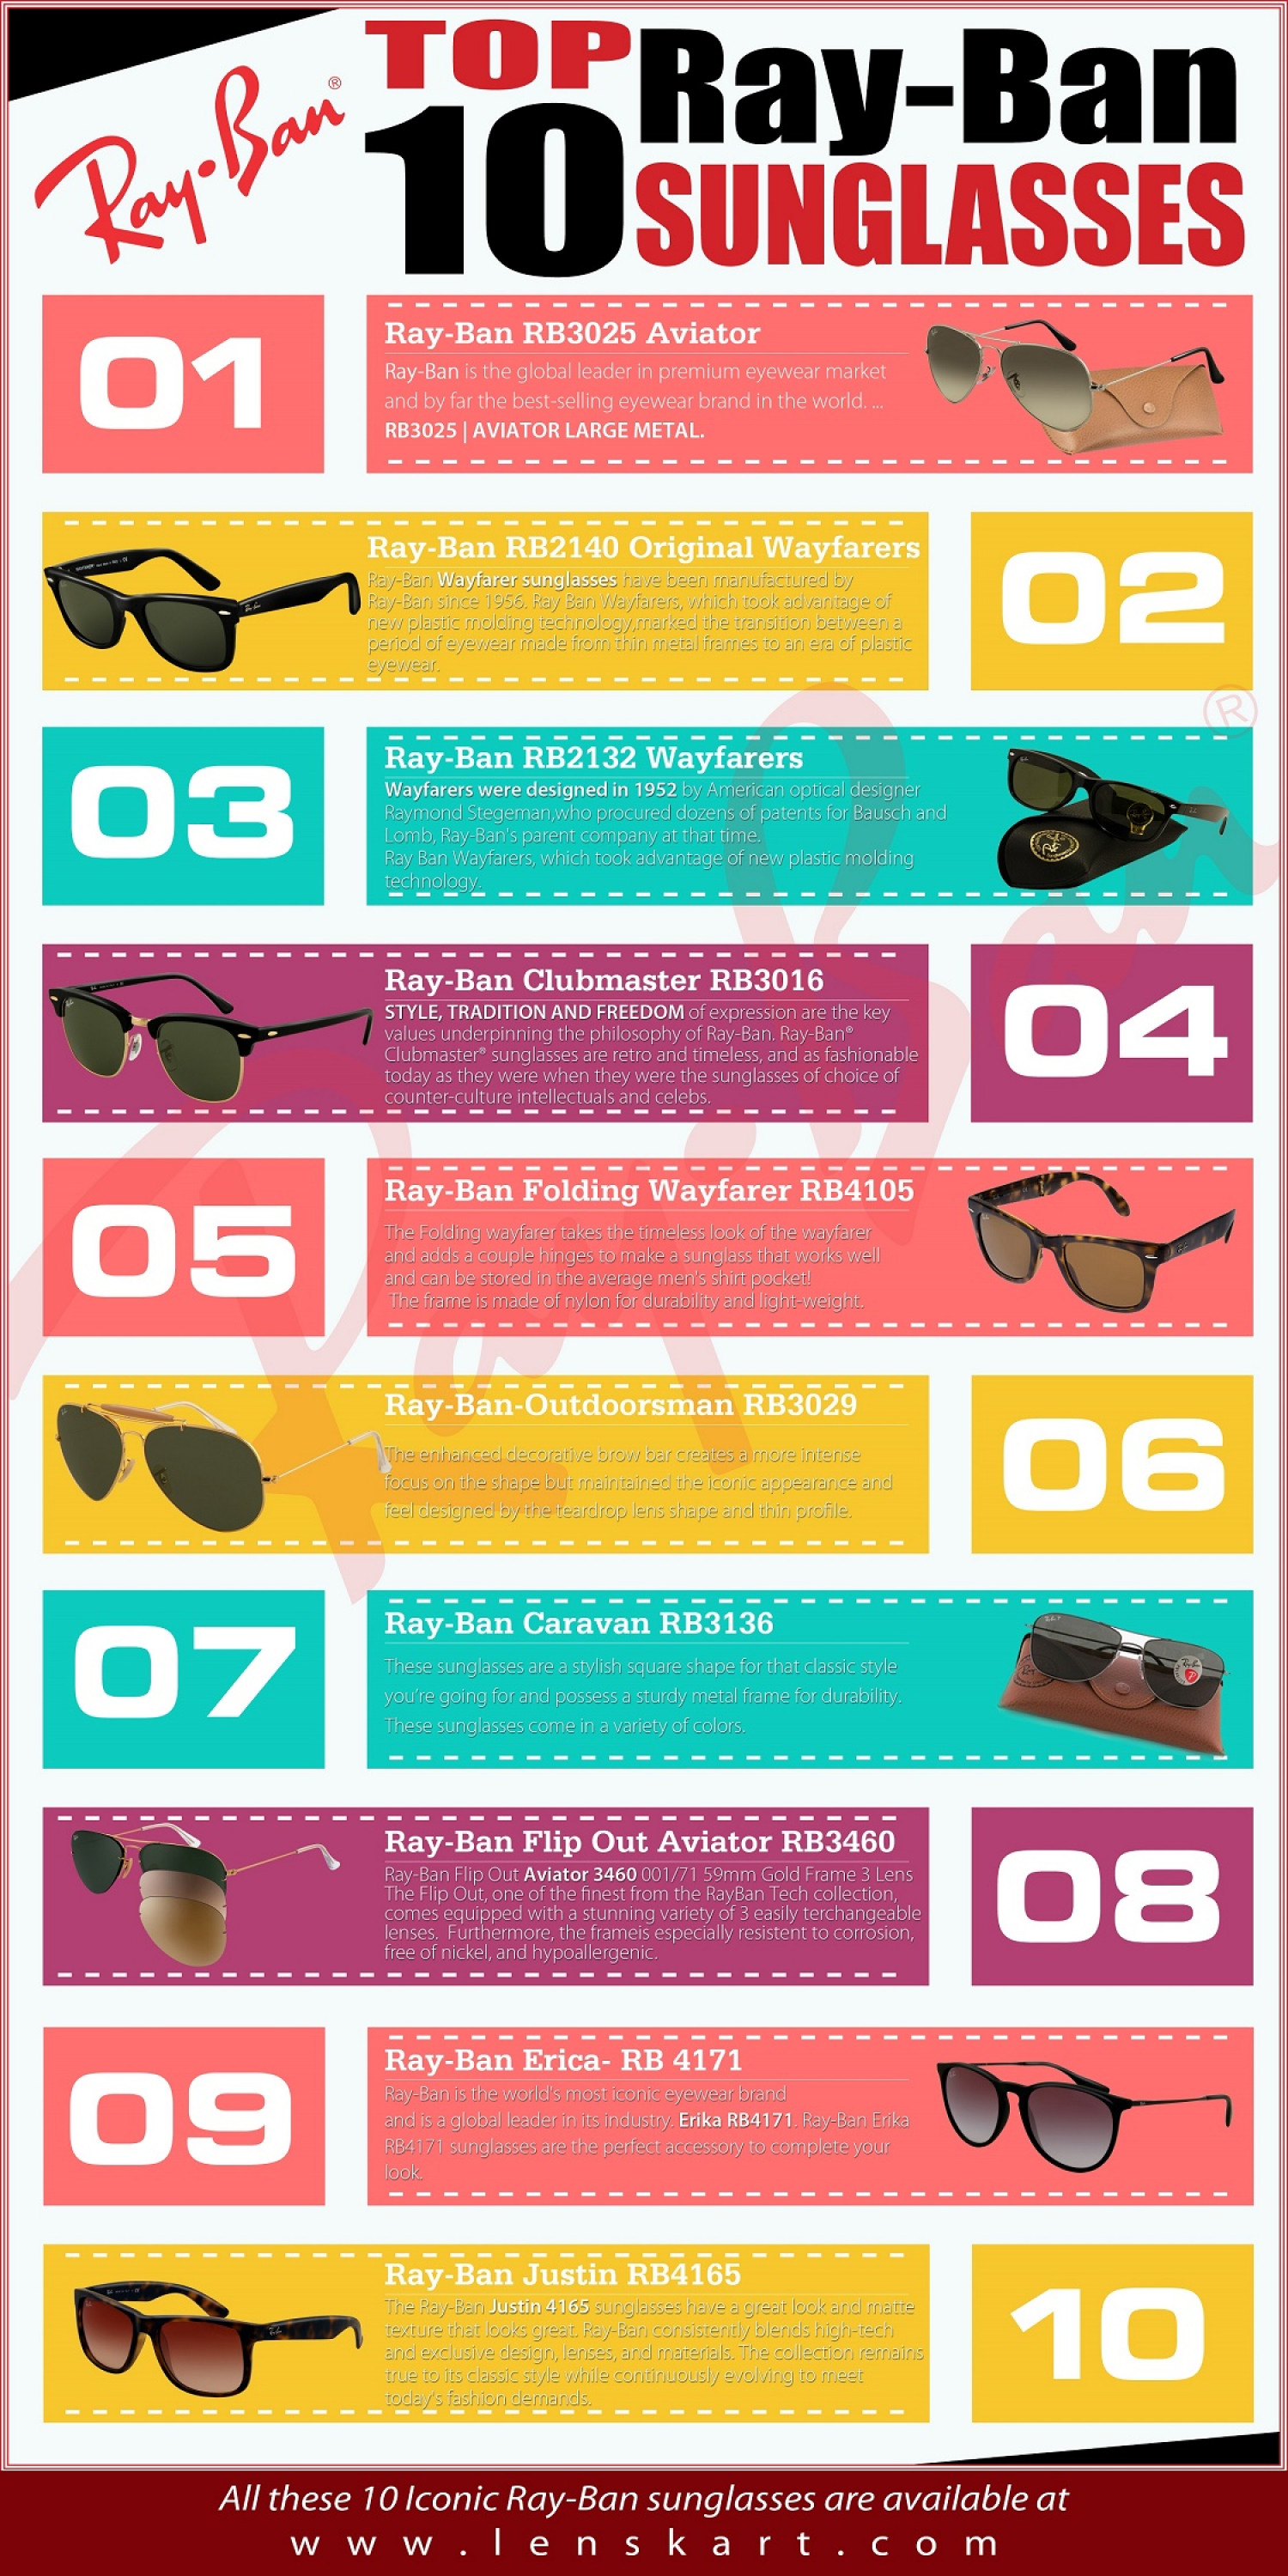 Top 10 Ray-Ban Sunglasses Infographic